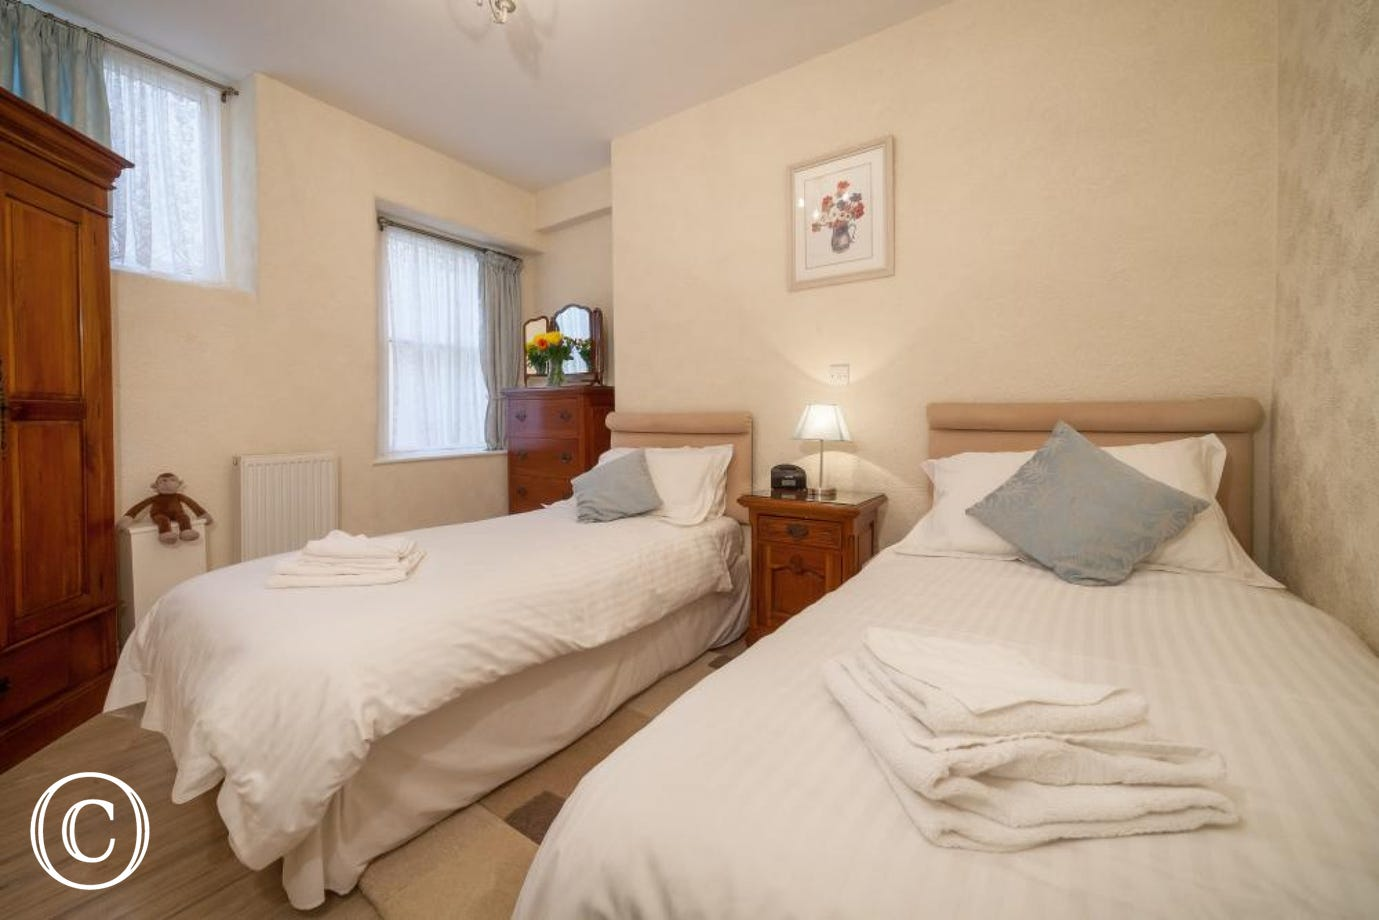 Meadfoot Beach Apartment, Torquay - Twin bedroom